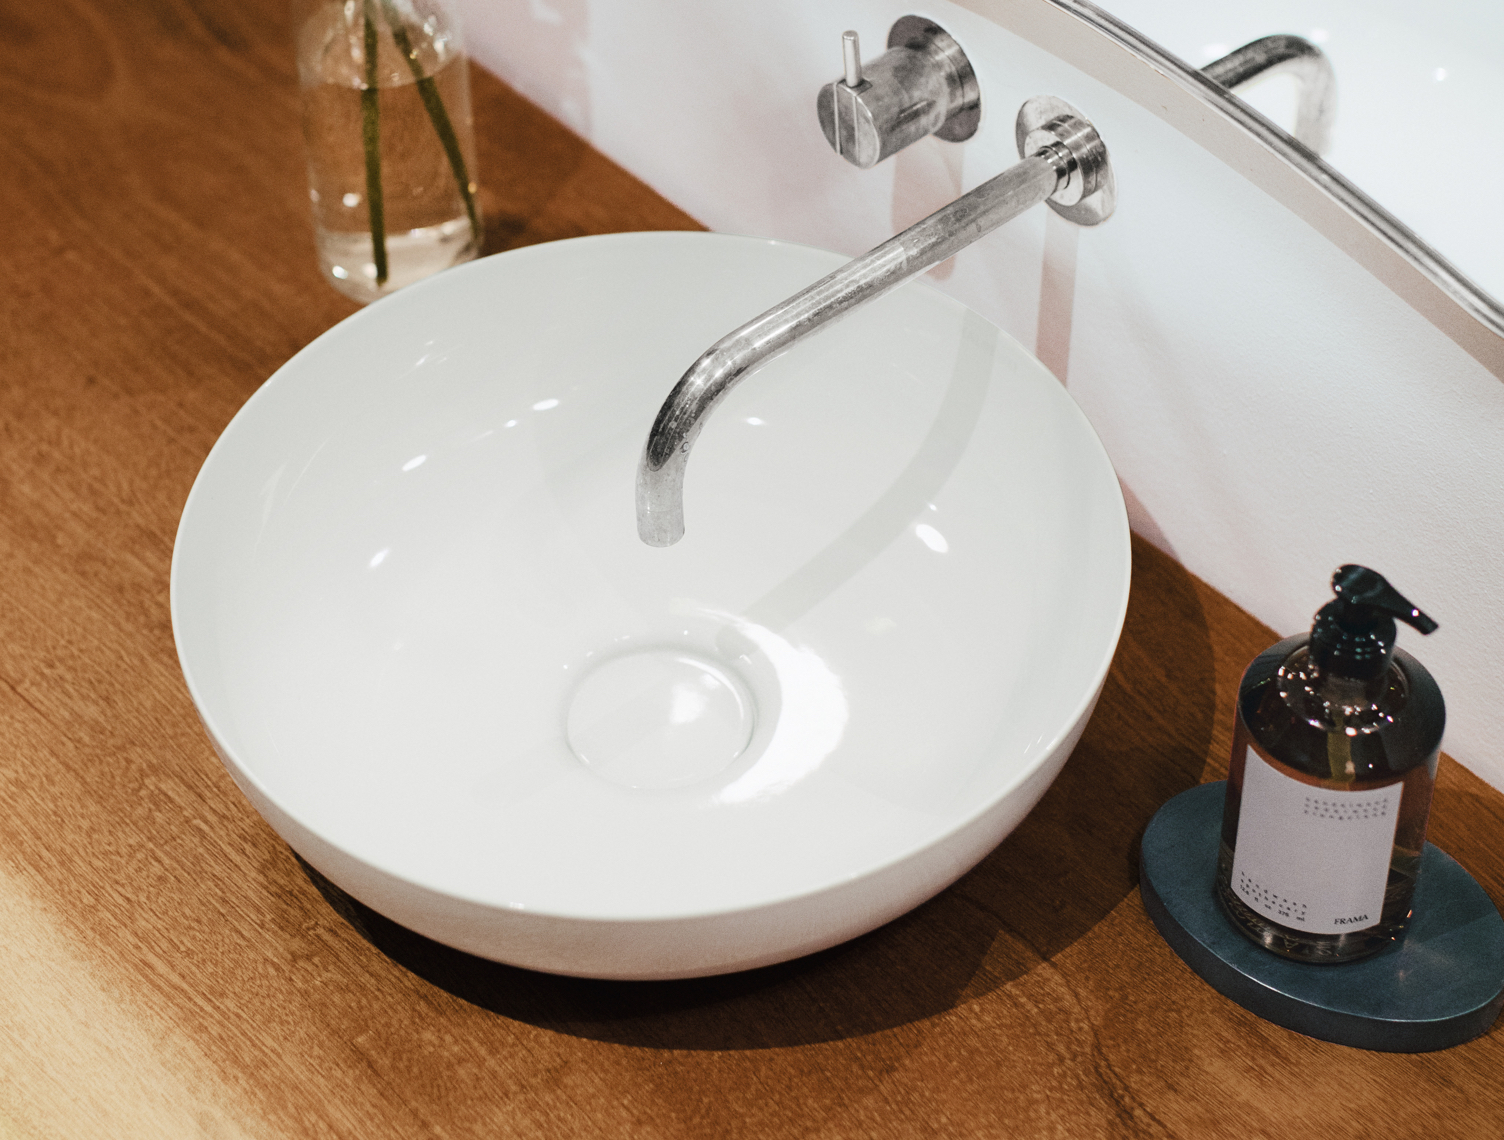 Using wood in the bathroom: a circular enamelled steel washbasin on an oiled wood surface.